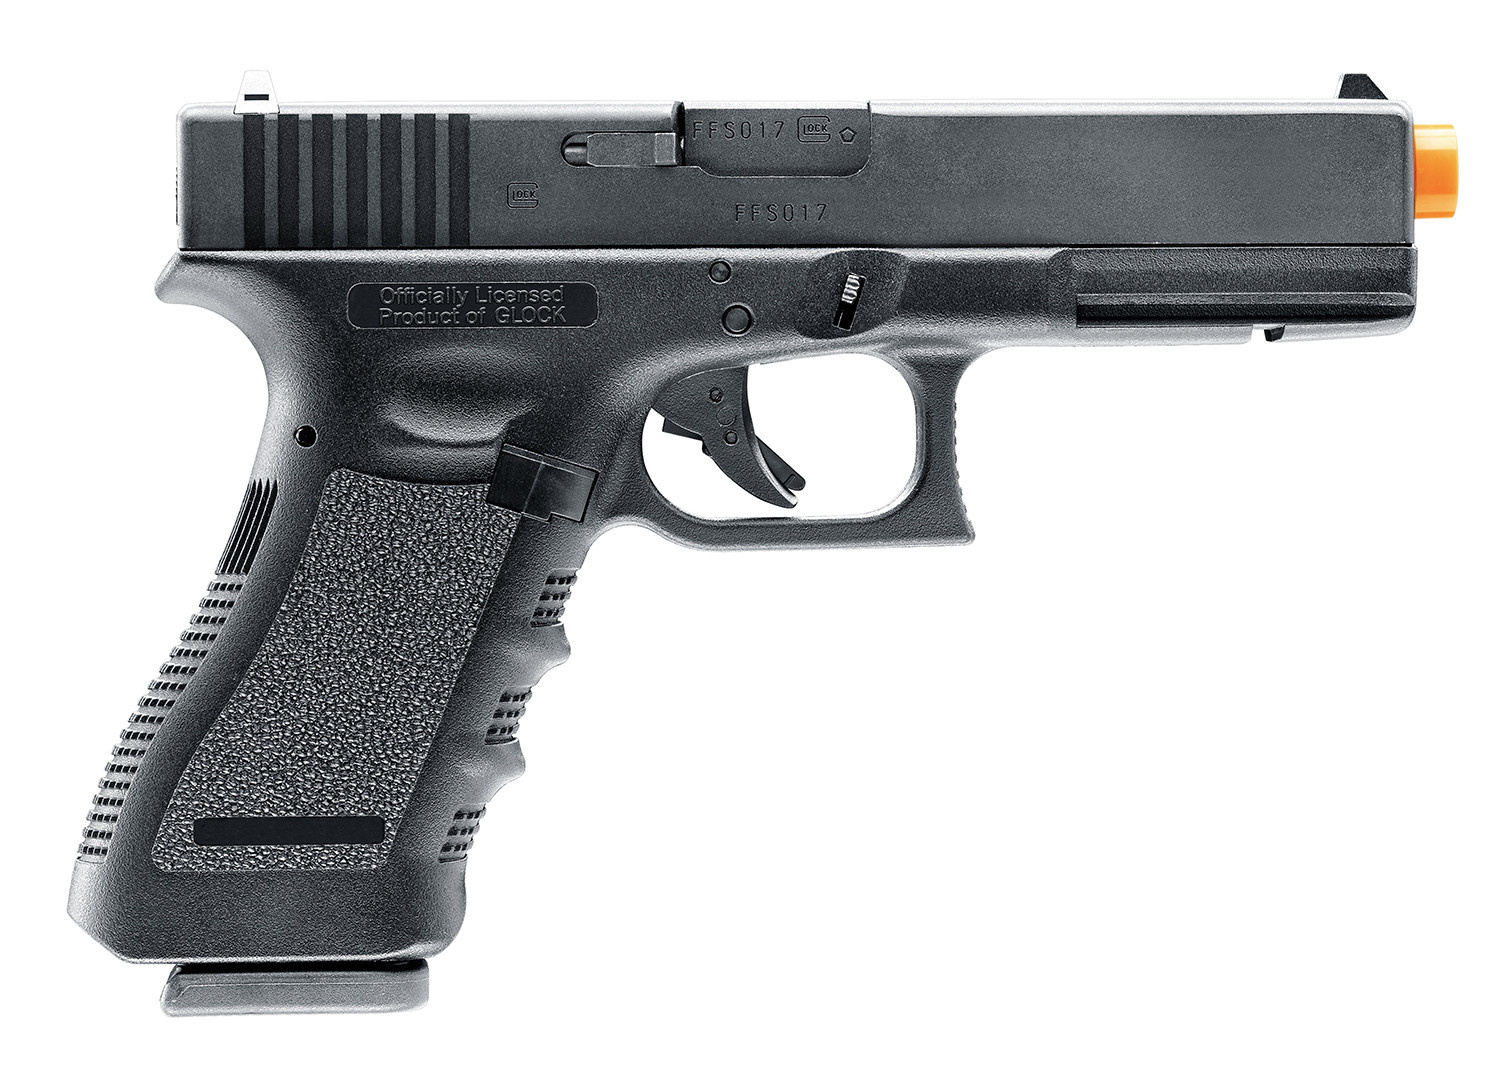 GLOCK G17 GEN3 GBB from VFC Black - Airsoft Extreme